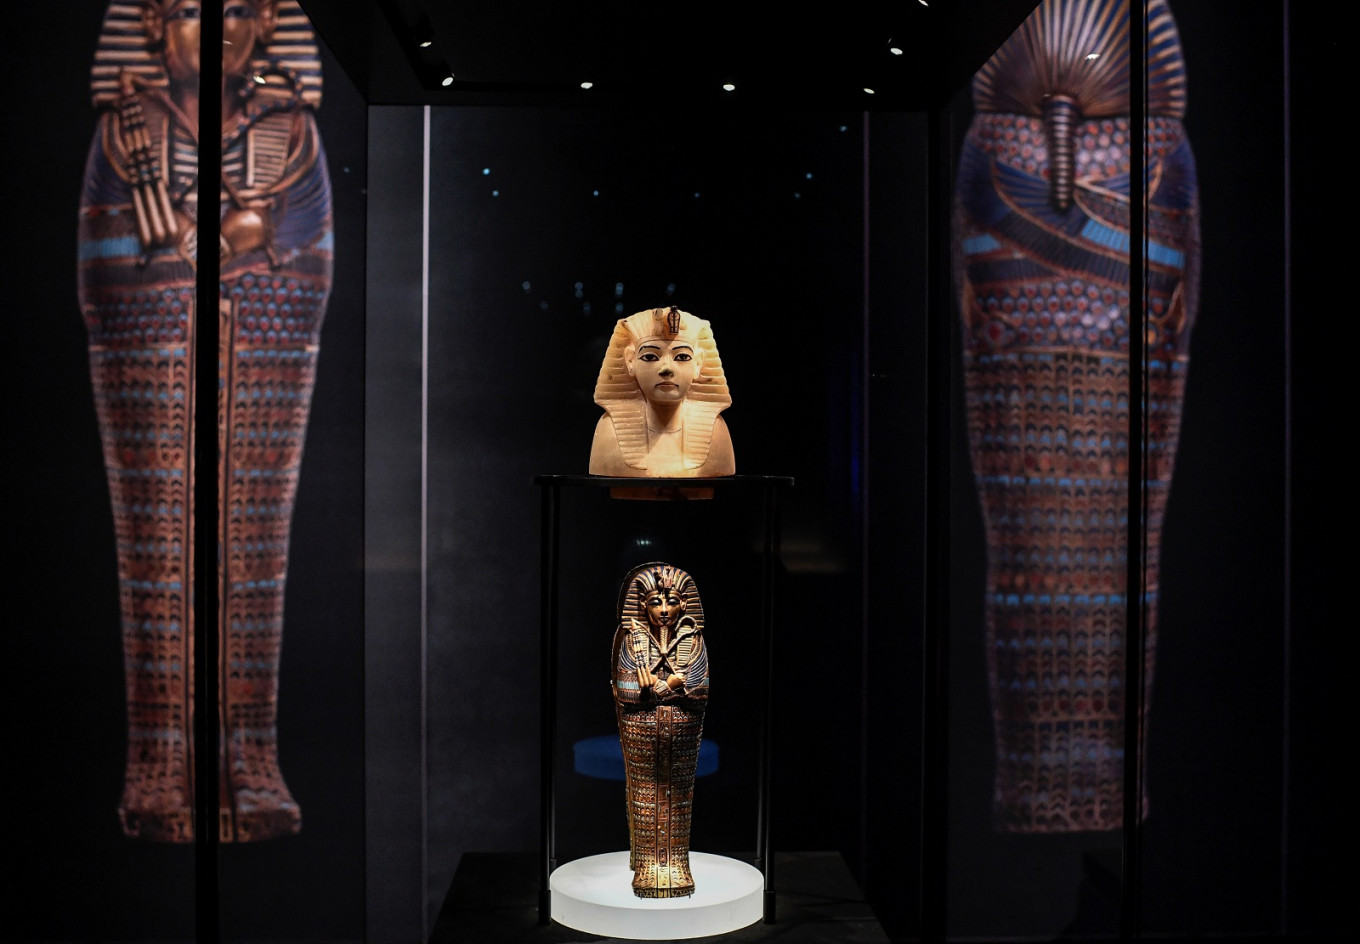 Paris Tutankhamun show sets new record with 1.42m visitors